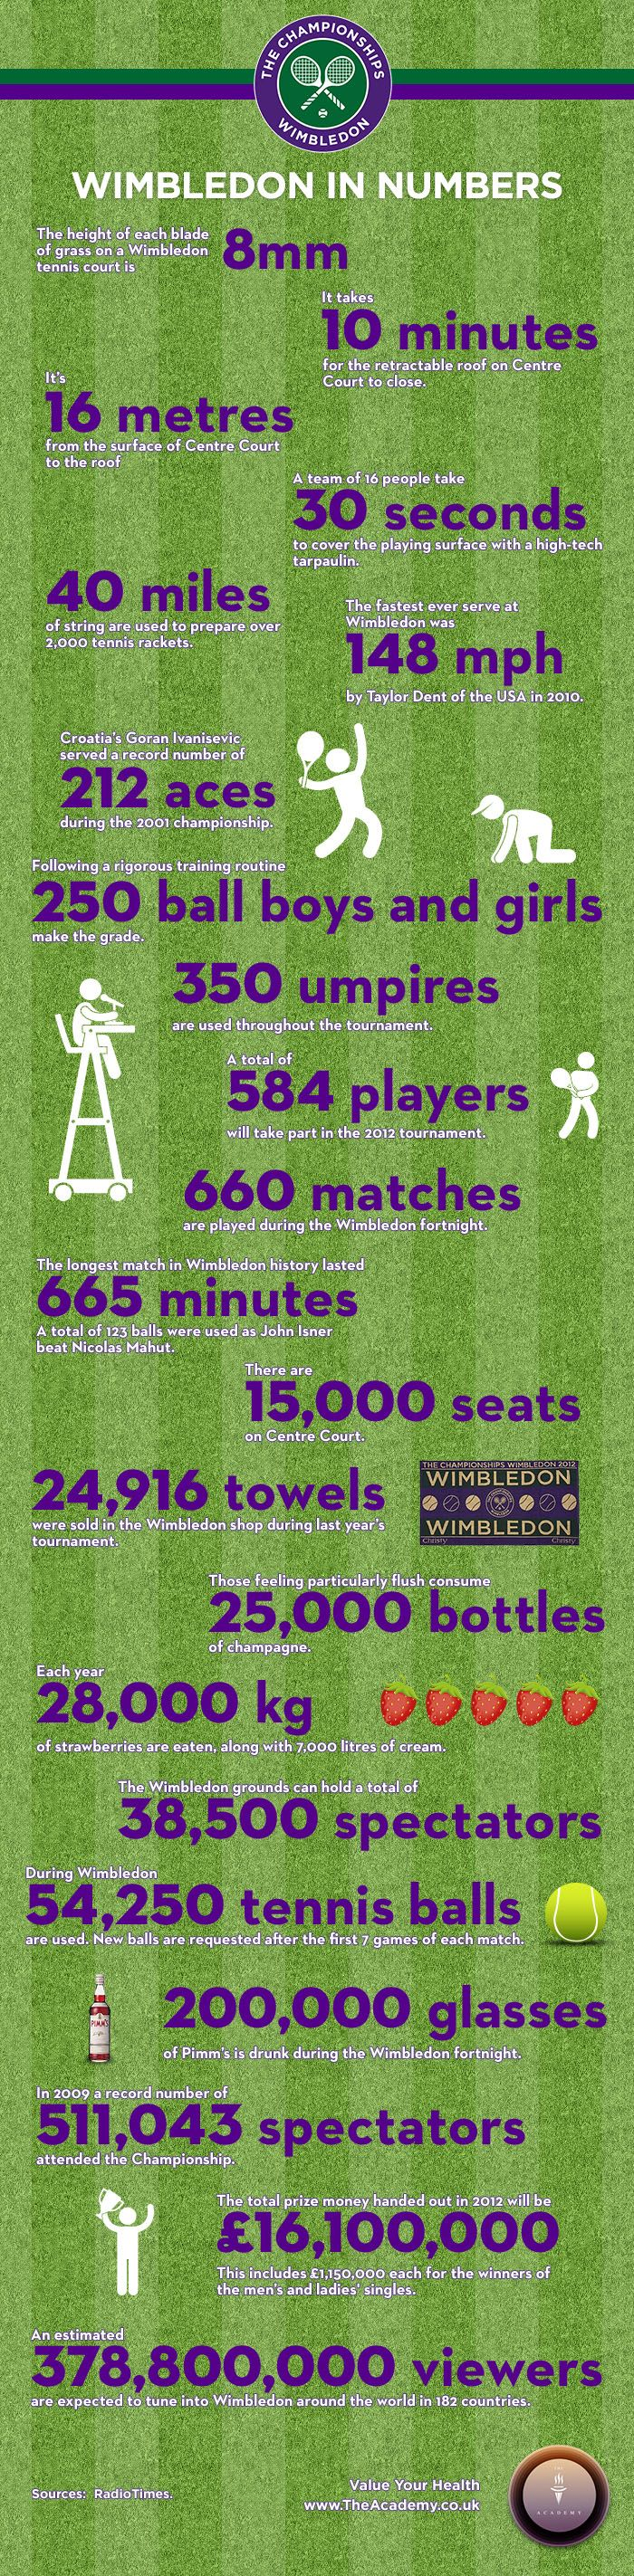 Wimbledon In Numbers  I love these geeky little facts! #WimbledonWorthy